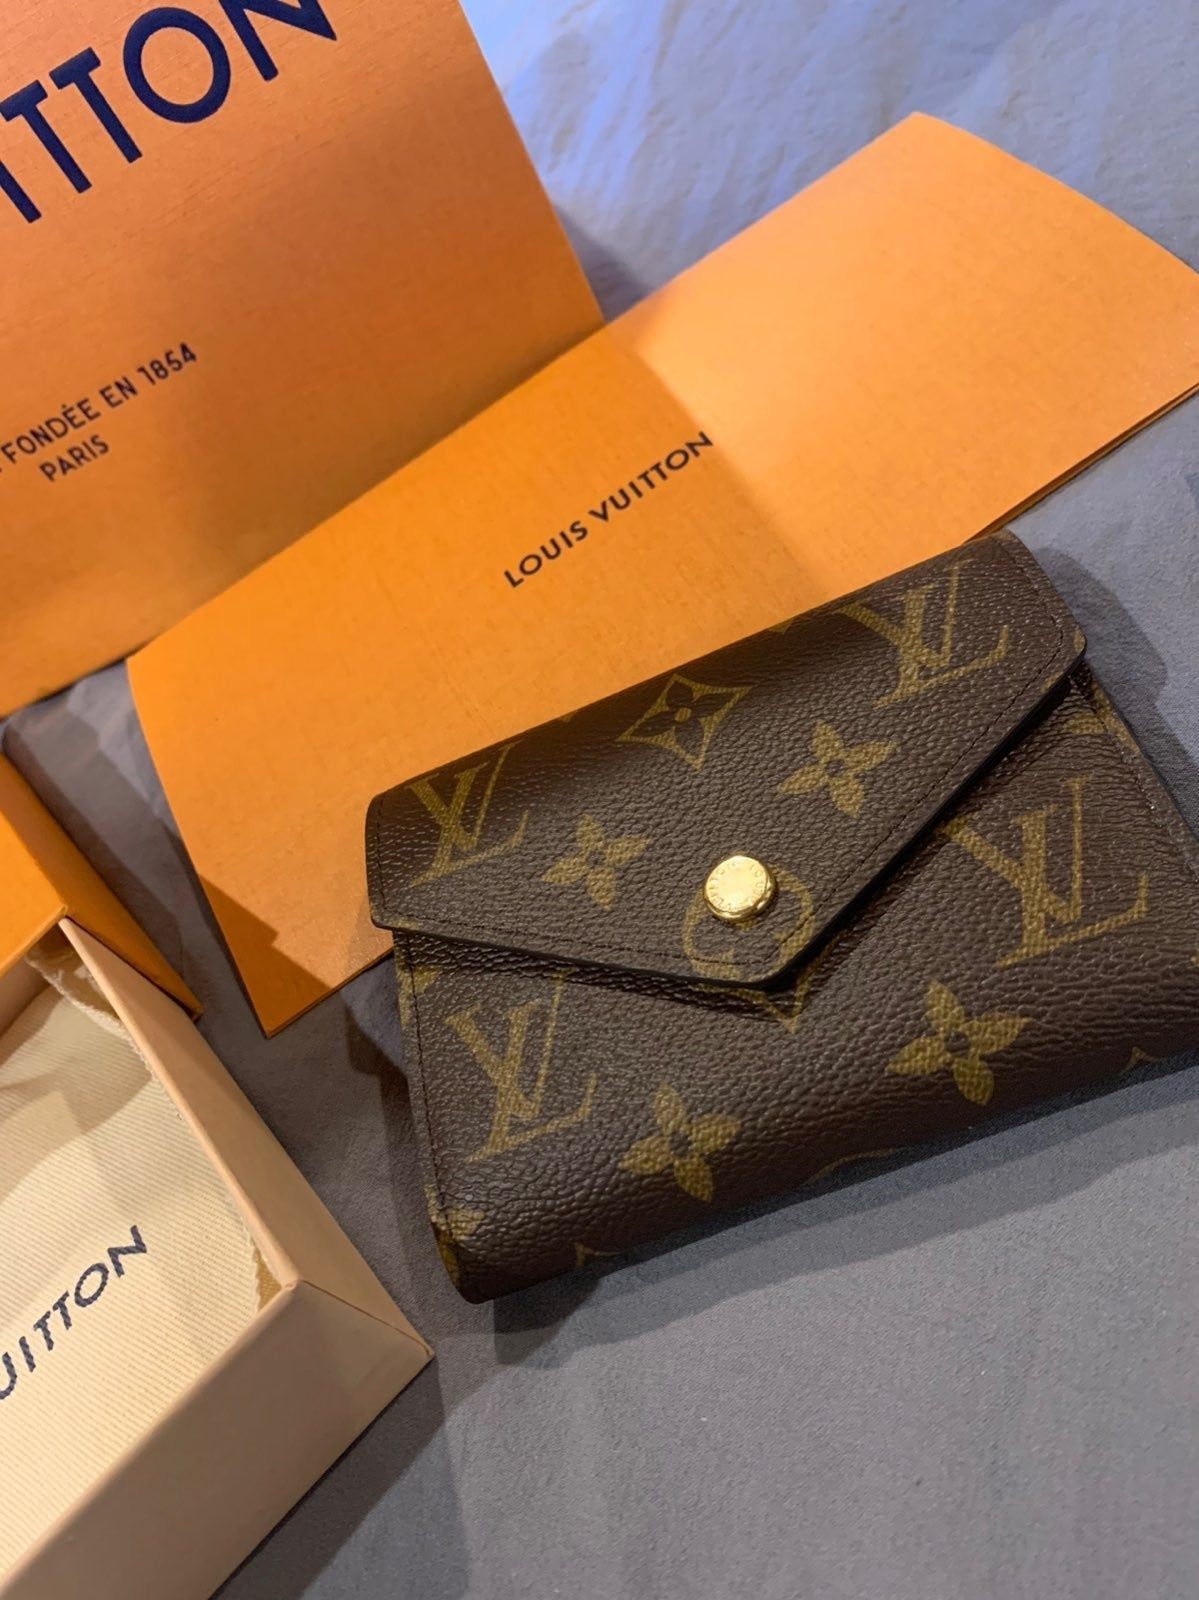 100 Authentic Brand New Never Used Date Code Sd3129 Louis Vuitton Monogram Victorine Walle Louis Vuitton Handbags Louis Vuitton Wallet Used Louis Vuitton